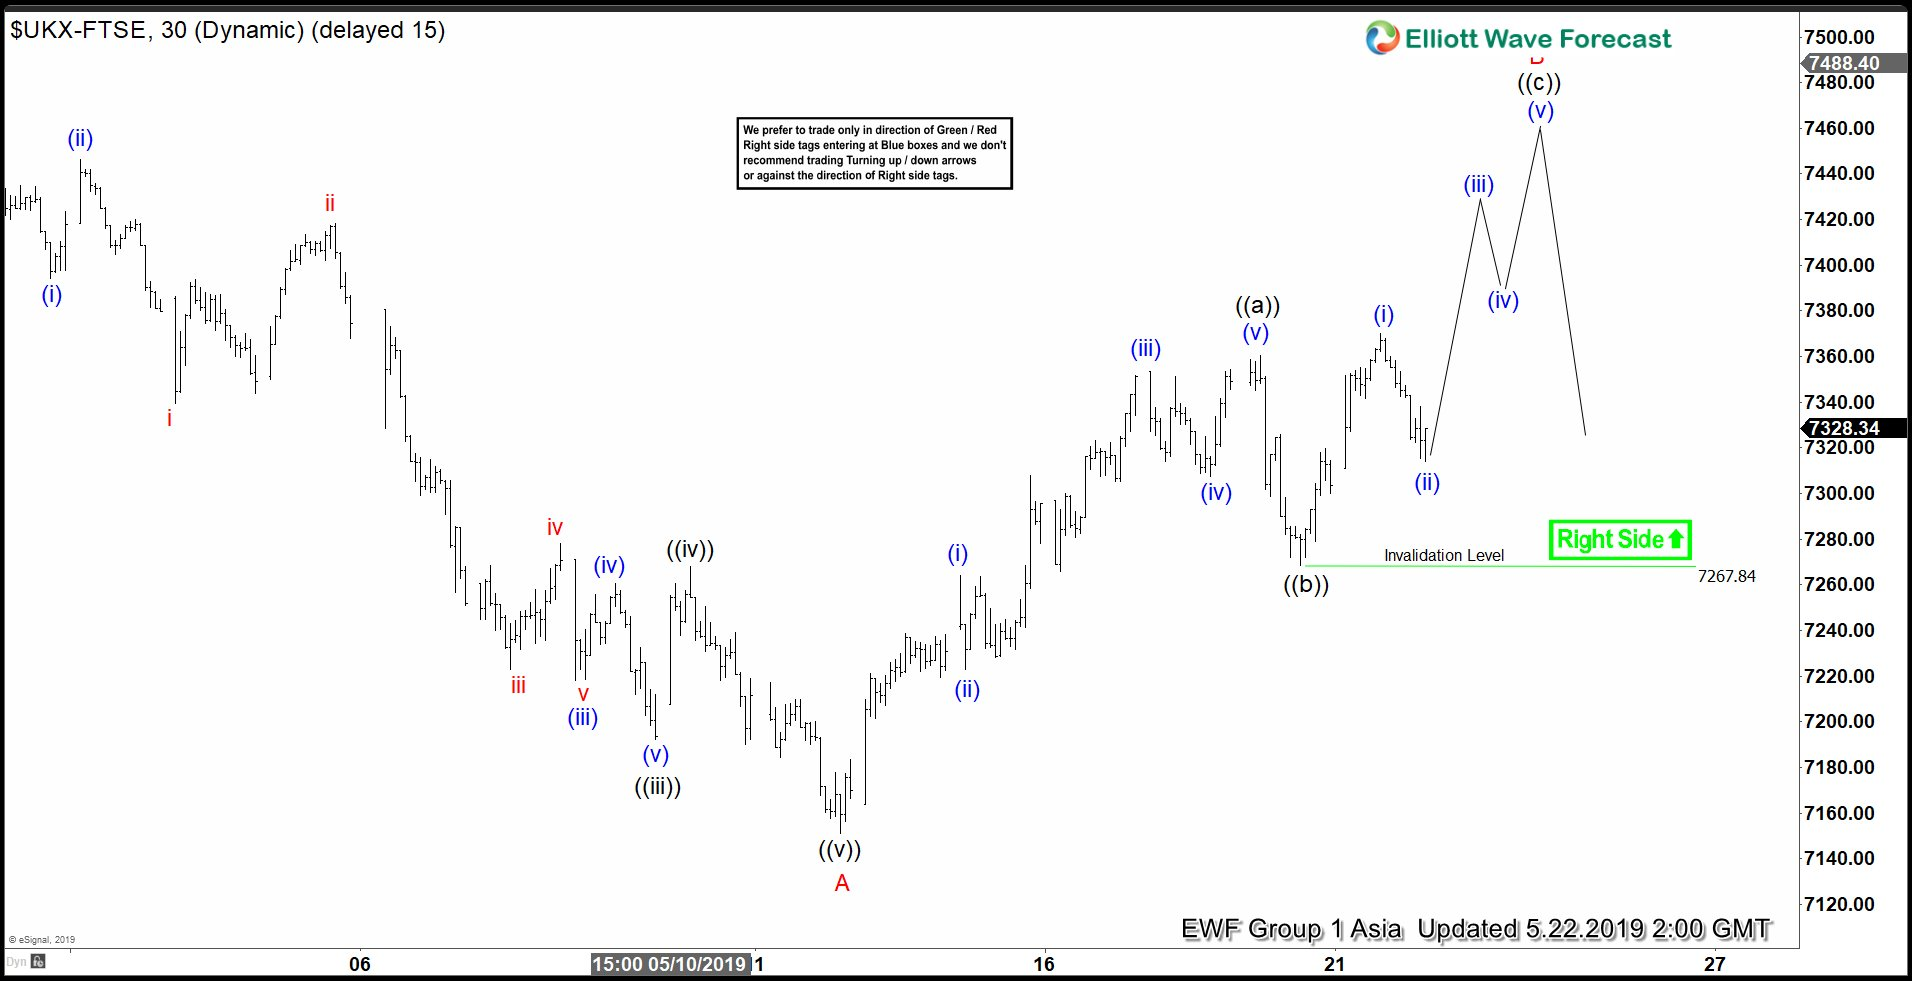 Elliott Wave View: Short Term Support in FTSE